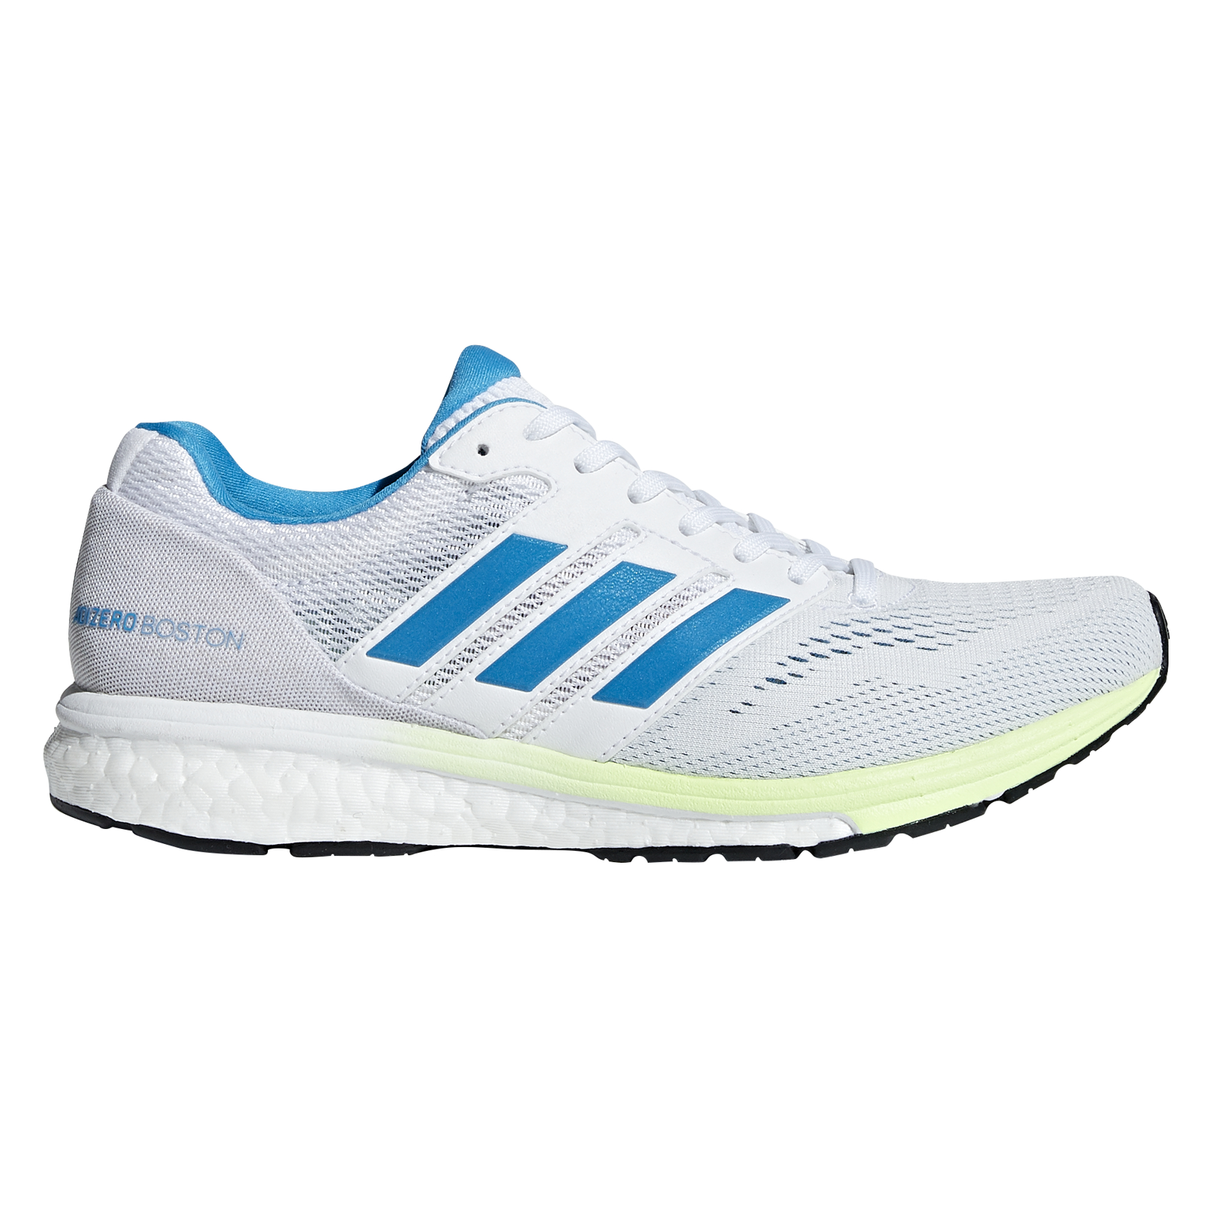 best website a70e1 26833 Adidas Adizero Boston 7 - Womens Running Shoes - White